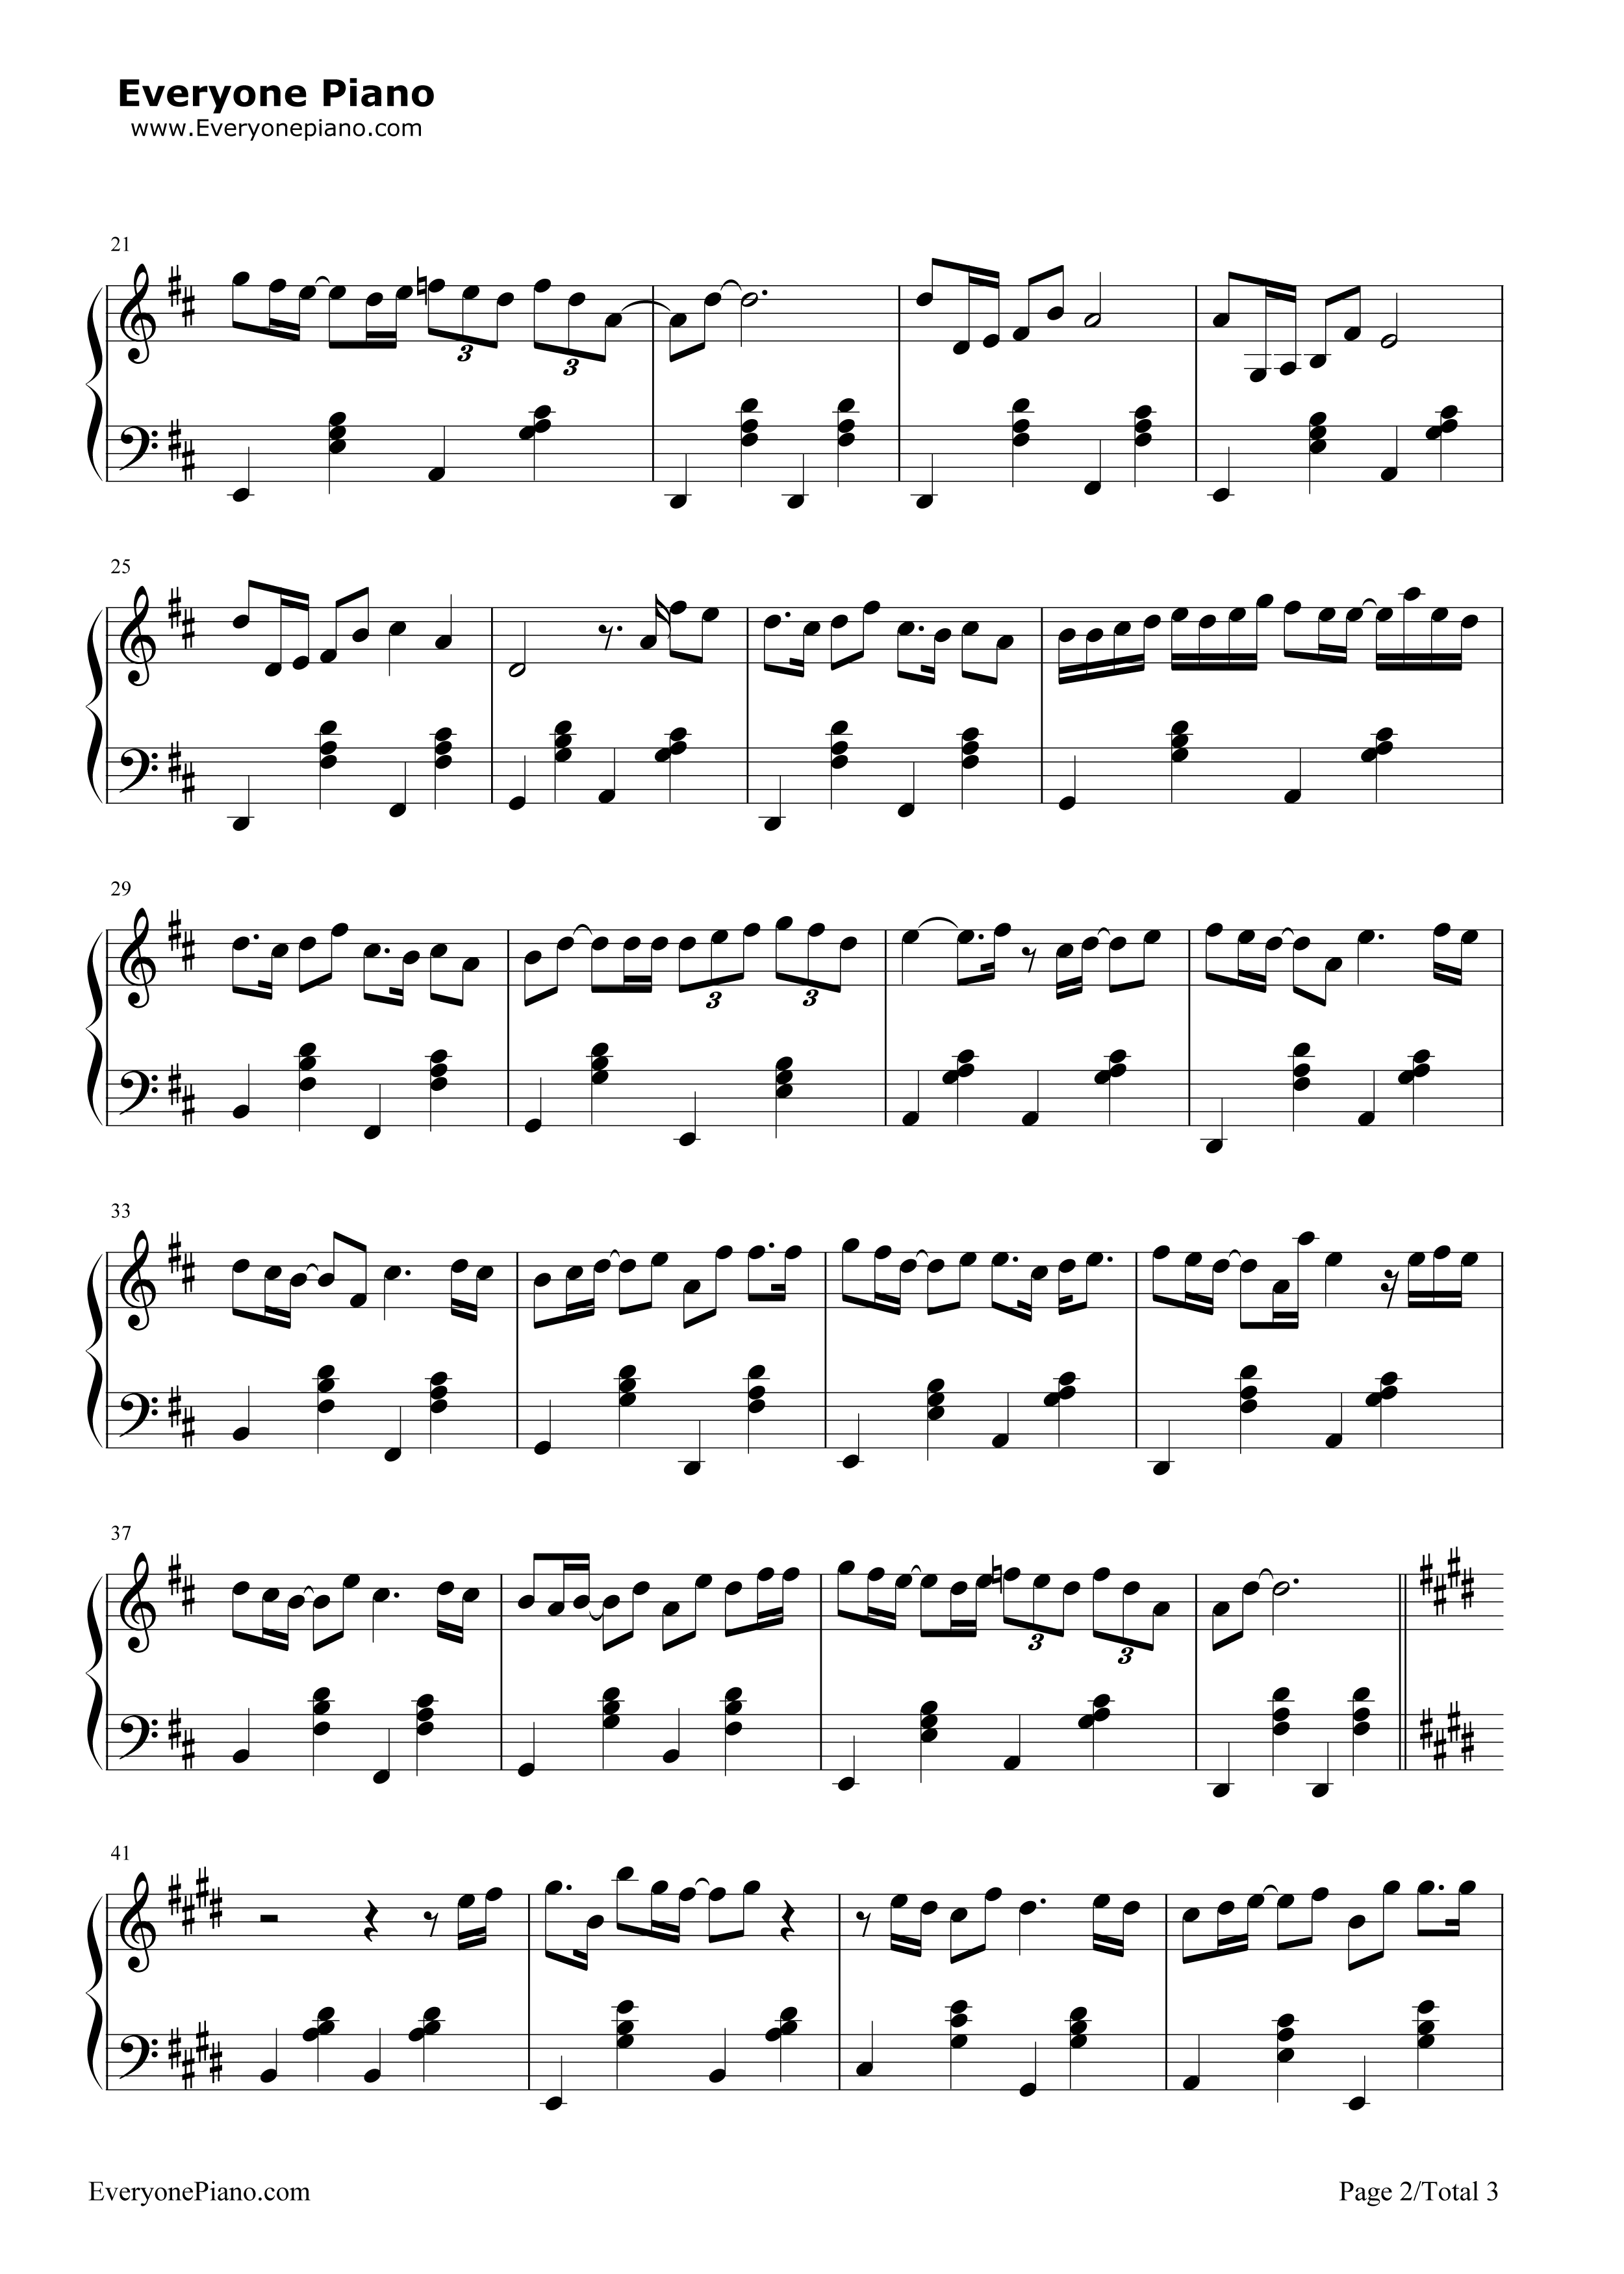 A thousand years later jj lin stave preview 2 free piano sheet listen now print sheet a thousand years later jj lin stave preview 2 hexwebz Image collections